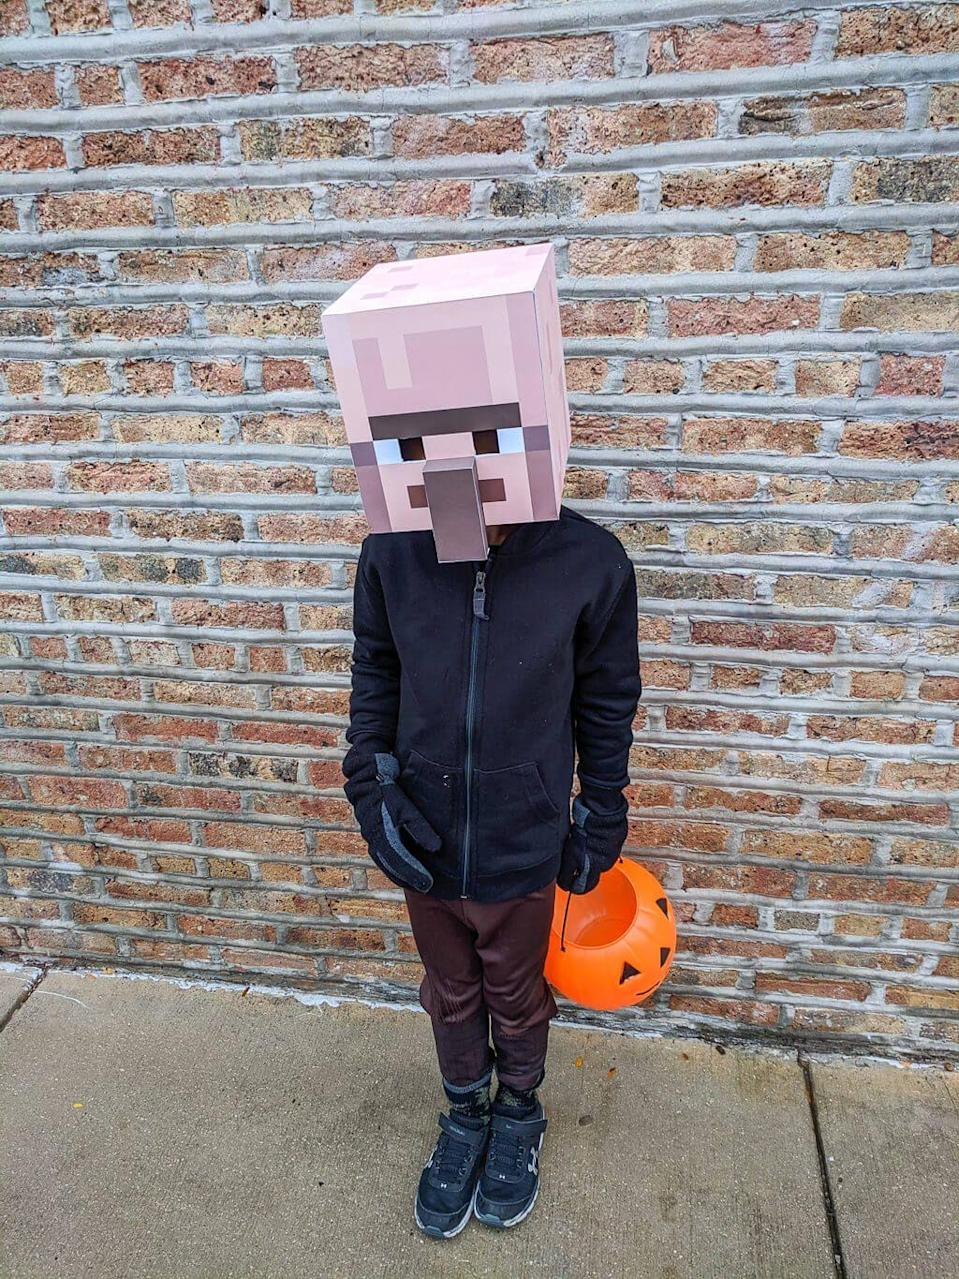 """<p>Show your loyalty to <em><a href=""""https://www.merrimentdesign.com/minecraft-halloween-costume-diy-for-kids.php"""" rel=""""nofollow noopener"""" target=""""_blank"""" data-ylk=""""slk:Minecraft"""" class=""""link rapid-noclick-resp"""">Minecraft</a></em> with this DIY look. Your little gamer will go gaga over our pick.<br></p>"""